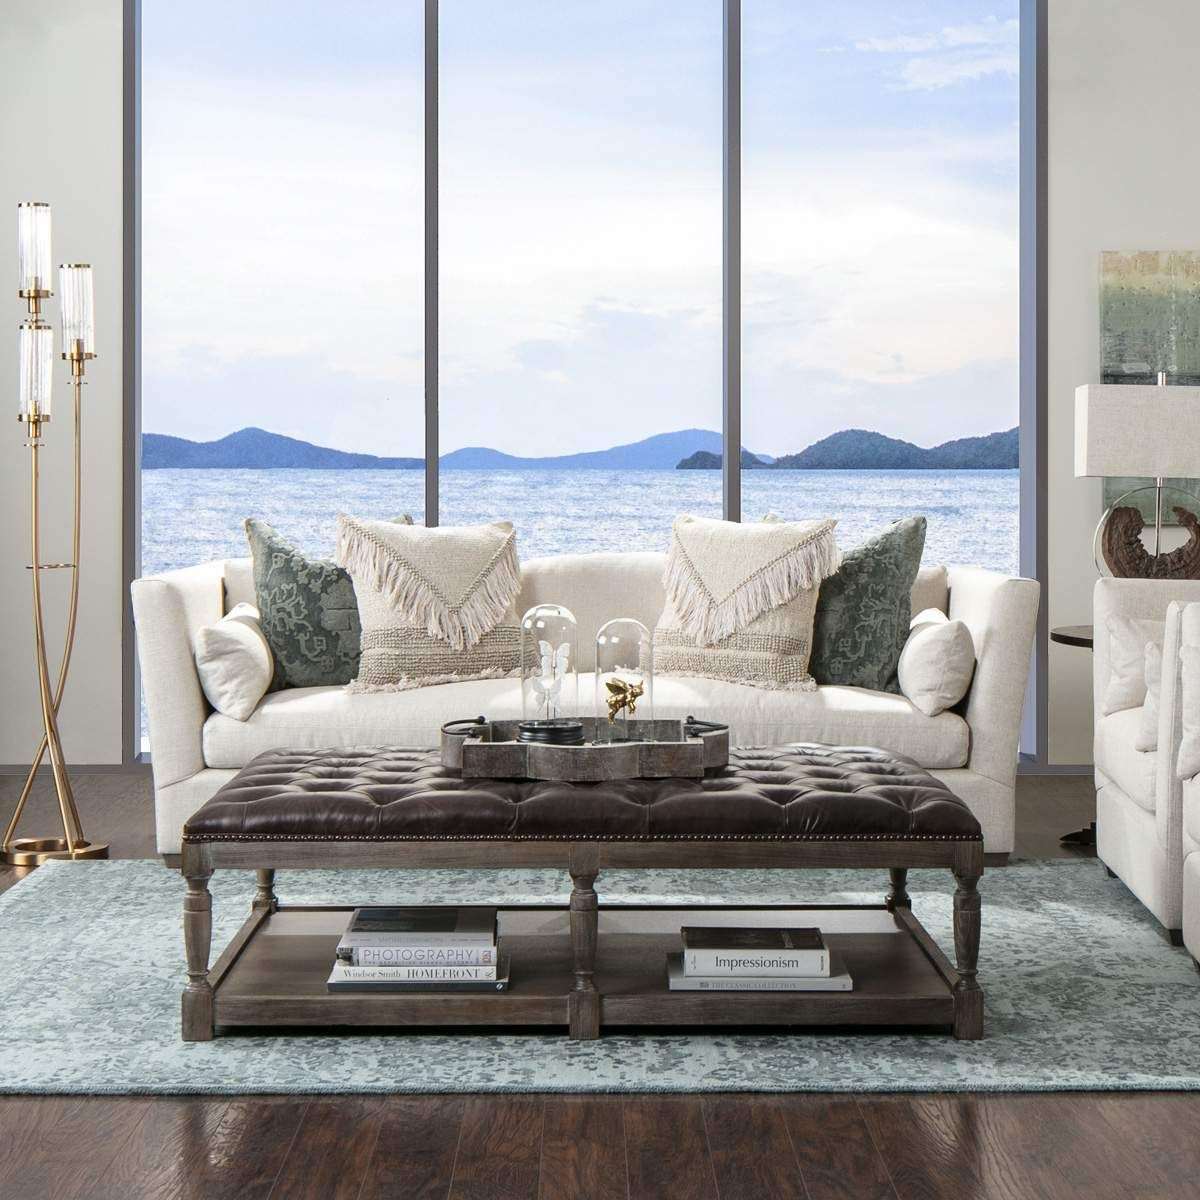 Best Affordable Expensive Looking Furniture Apartment